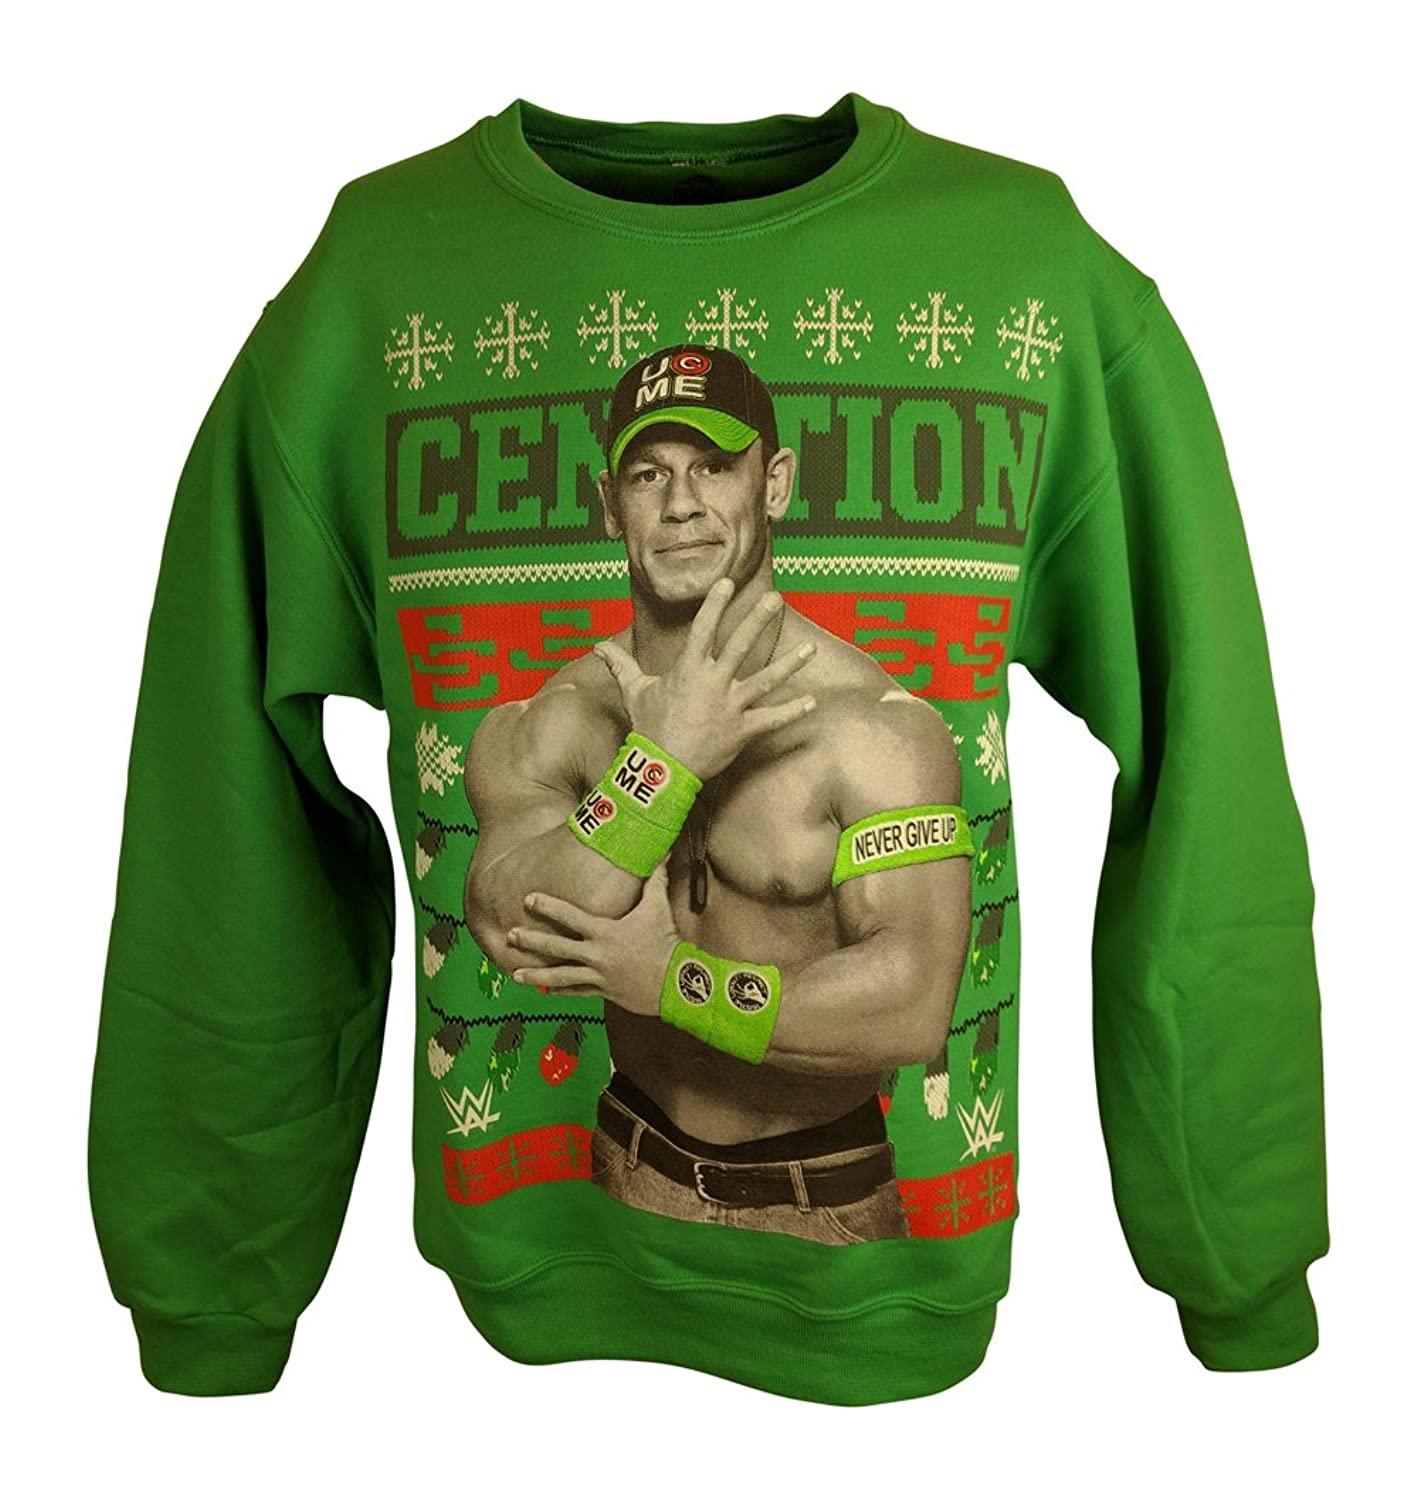 Amazon.com : WWE John Cena Small Ugly Christmas Sweater : Sports ...